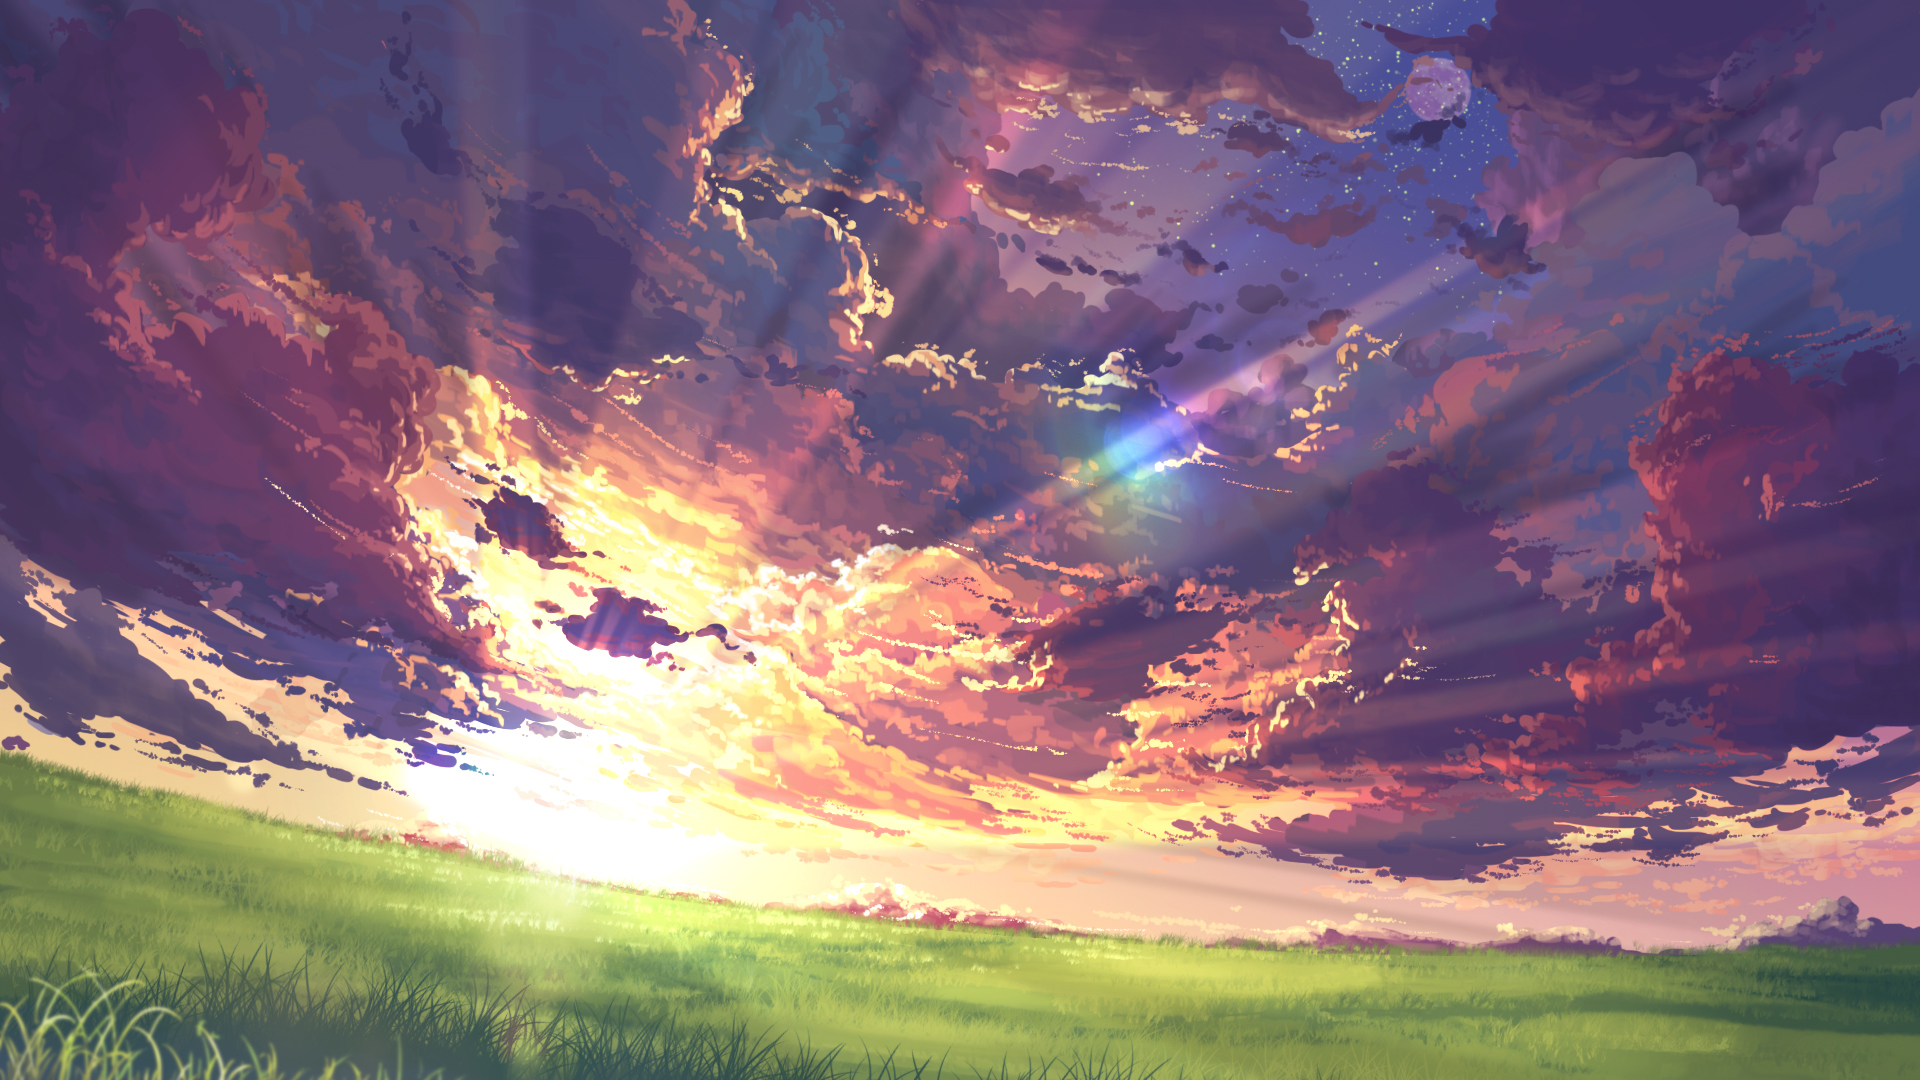 Random Anime Wallpapers In 2021 Anime Wallpaper 1920x1080 Anime Backgrounds Wallpapers Anime Scenery